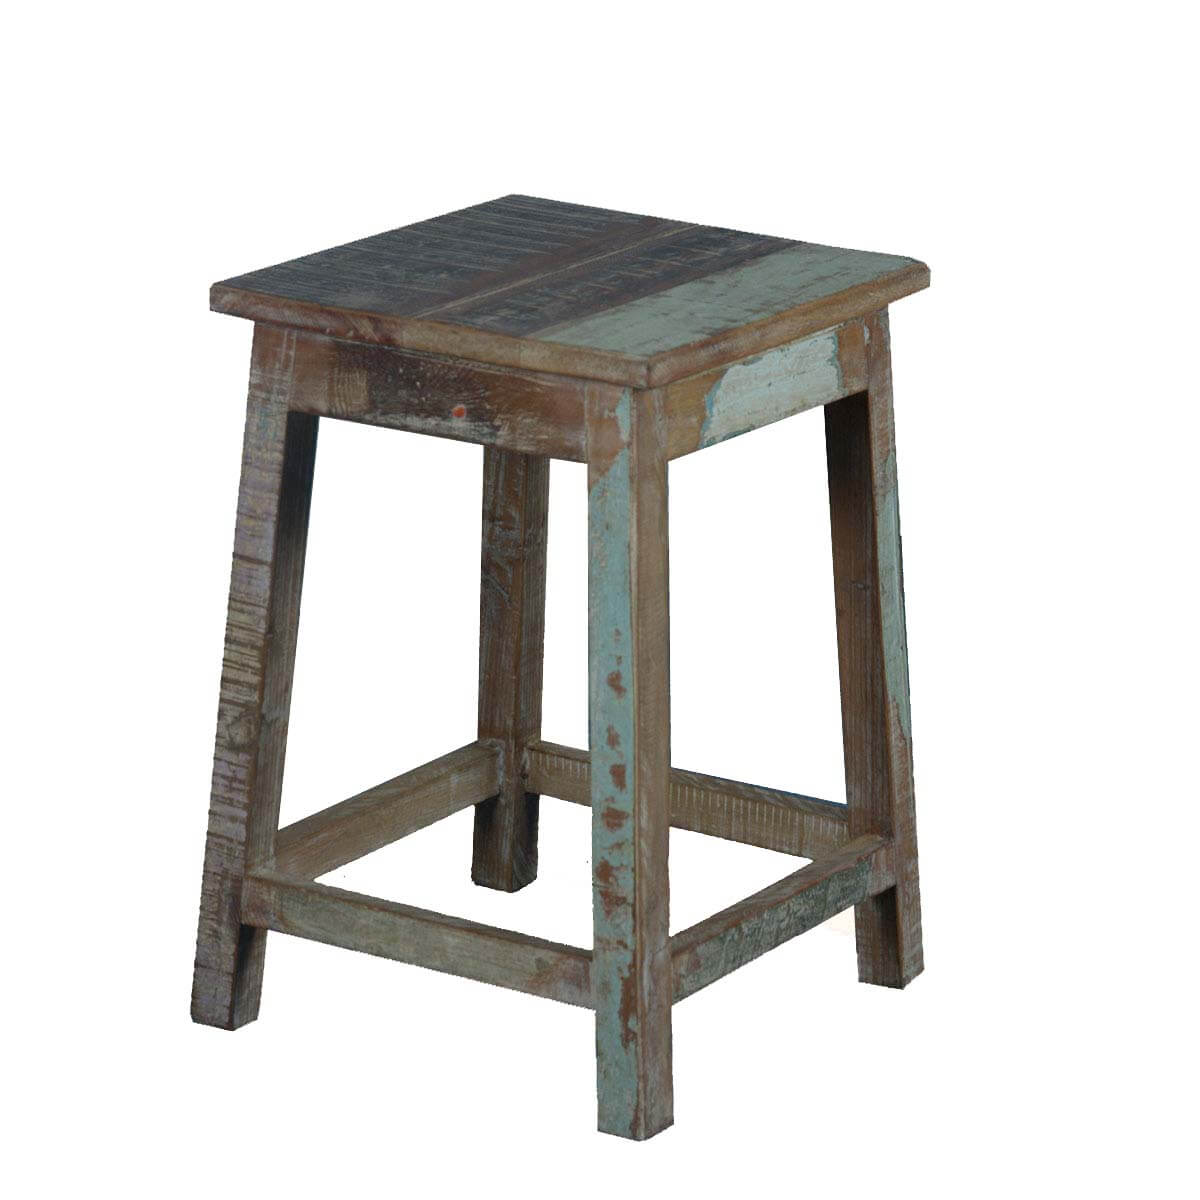 Square rustic reclaimed wood quot pedestal end table stool